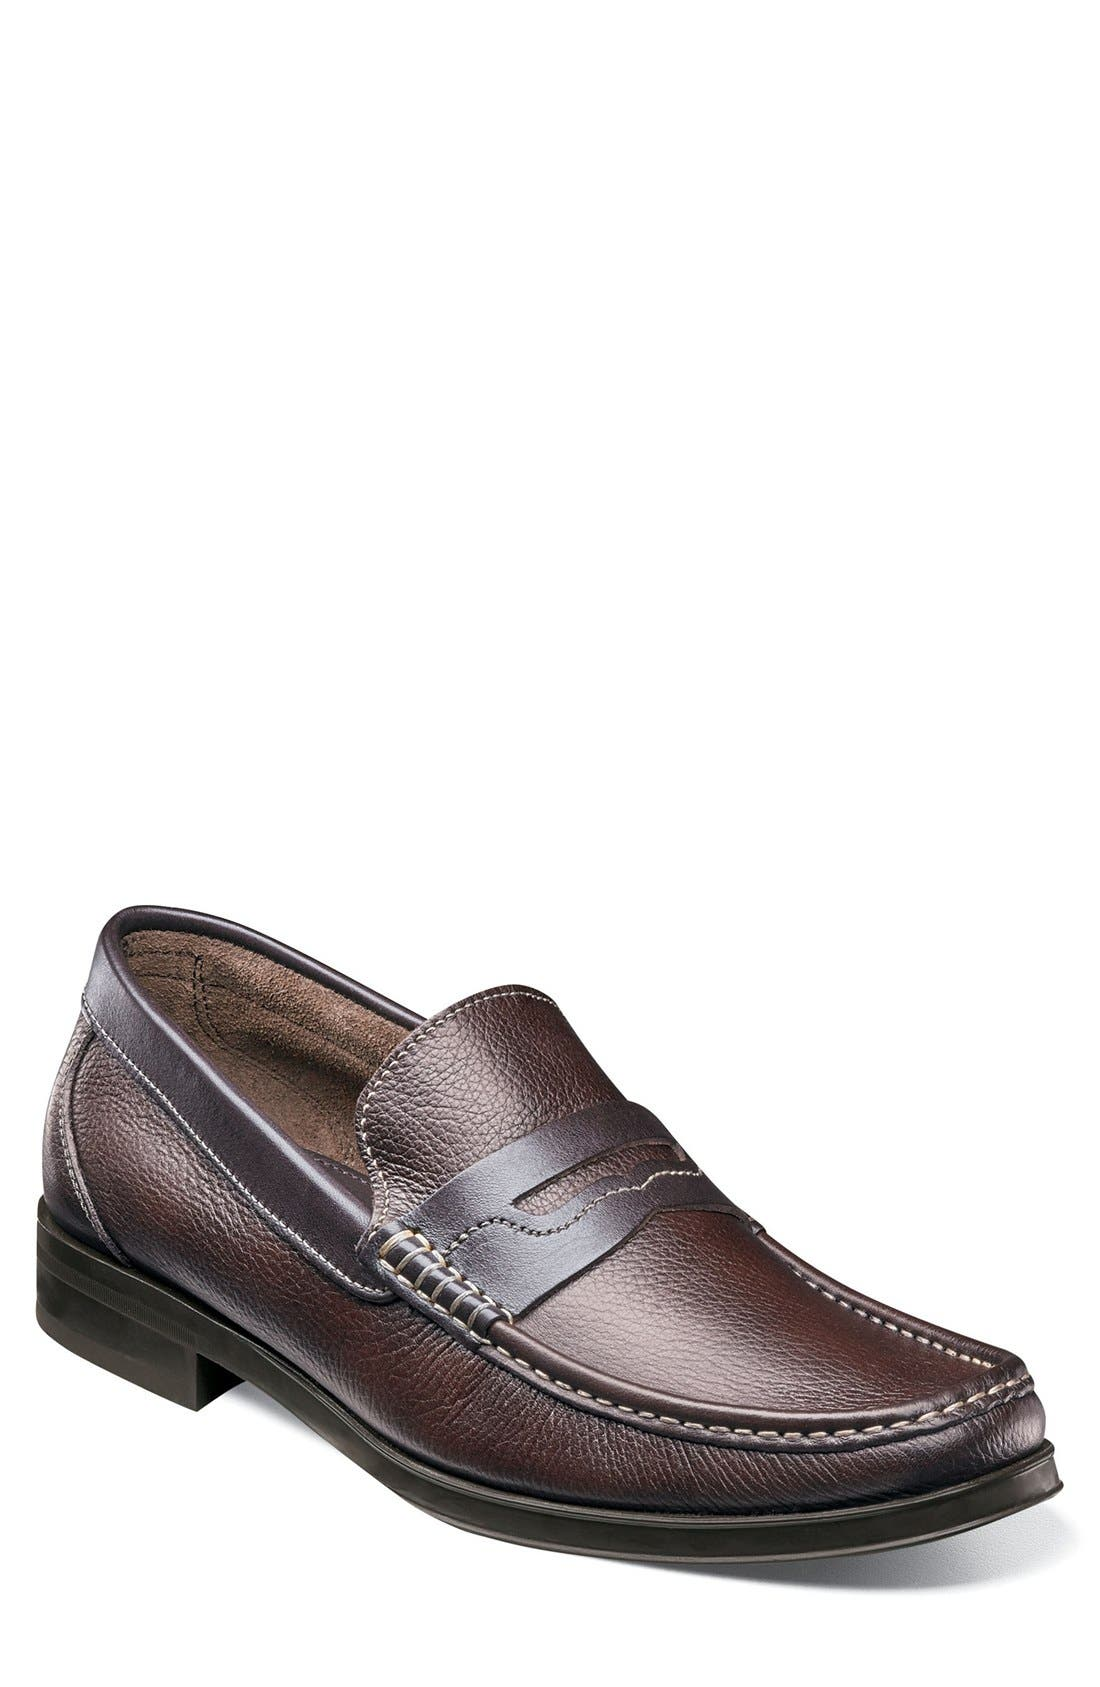 Westbrook Penny Loafer,                             Alternate thumbnail 27, color,